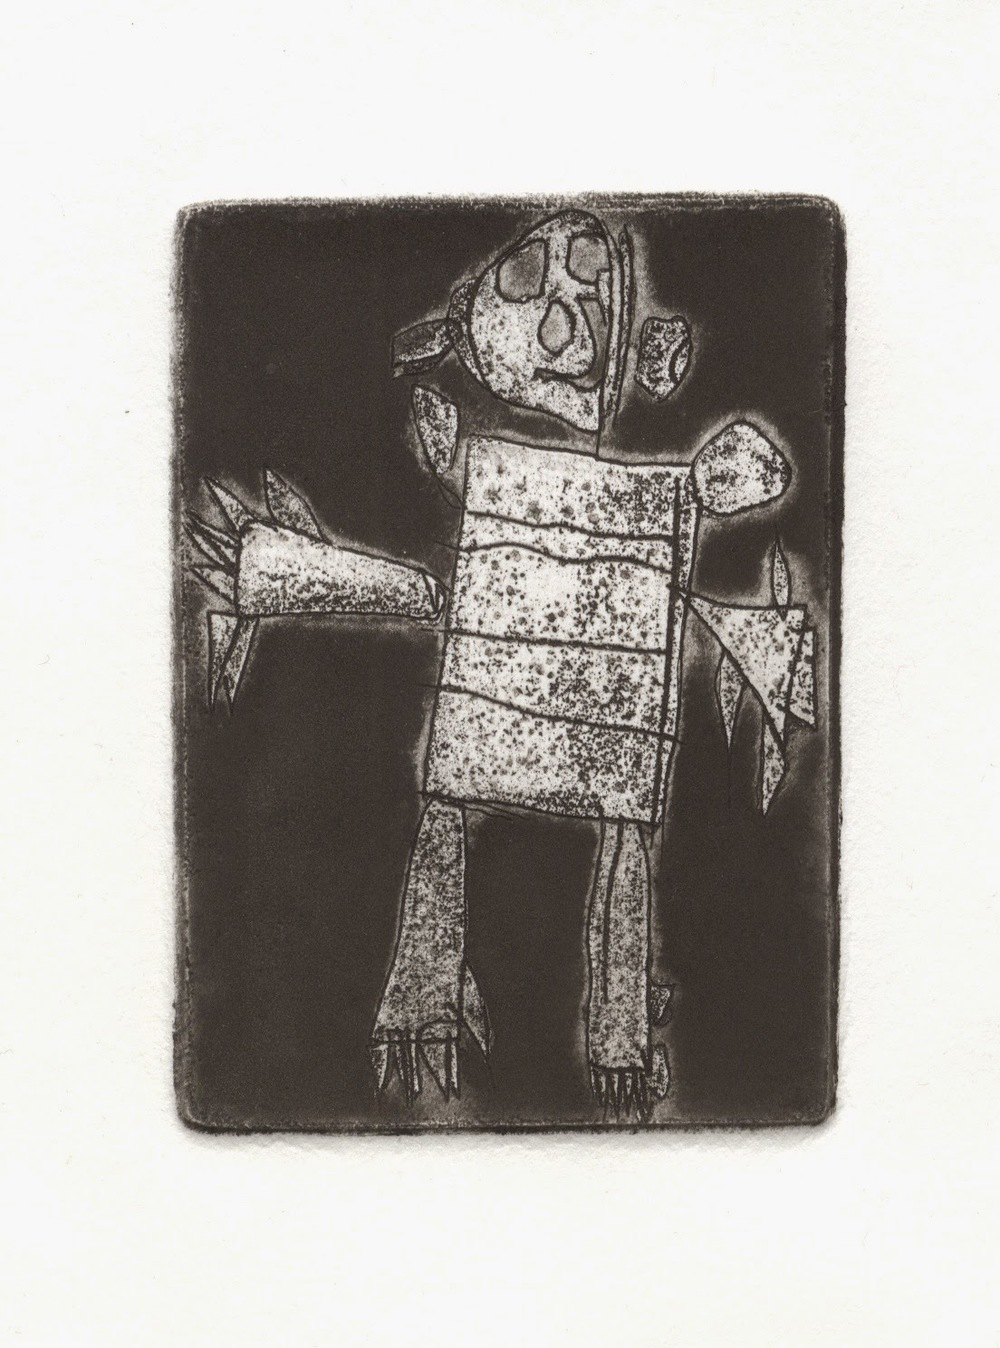 "'X-Ray Mommy', etching on paper, 2"" x 3"", 2014.     Looking for a Christmas Gift for the budding printmaker in your life? Why not consider a class or workshop at  Martha Street Studio ?   Starting January 13th, I'll be teaching...  INTRO TO ZINC ETCHING  w/Peter Graham Wednesdays, 6-9pm January 13 - March 2 (8 weeks)  $250 (+ MPA membership) Zinc plates are etched rapidly in a bath of Copper Sulphate and water producing crisp lines. Zinc can be etched deeply for viscosity printing and blind embossing effects and can yield interesting textural results not possible with copper etching. Come learn these basic techniques of etching on zinc plate. No prior etching experience required.  Peter Graham is our studio tech. He's a painter/printmaker, and must only be fed low sodium, low fat treats.  Contact the friendly folks in the office at 204 779 6253 or by email printmakers@mymts.net to register."